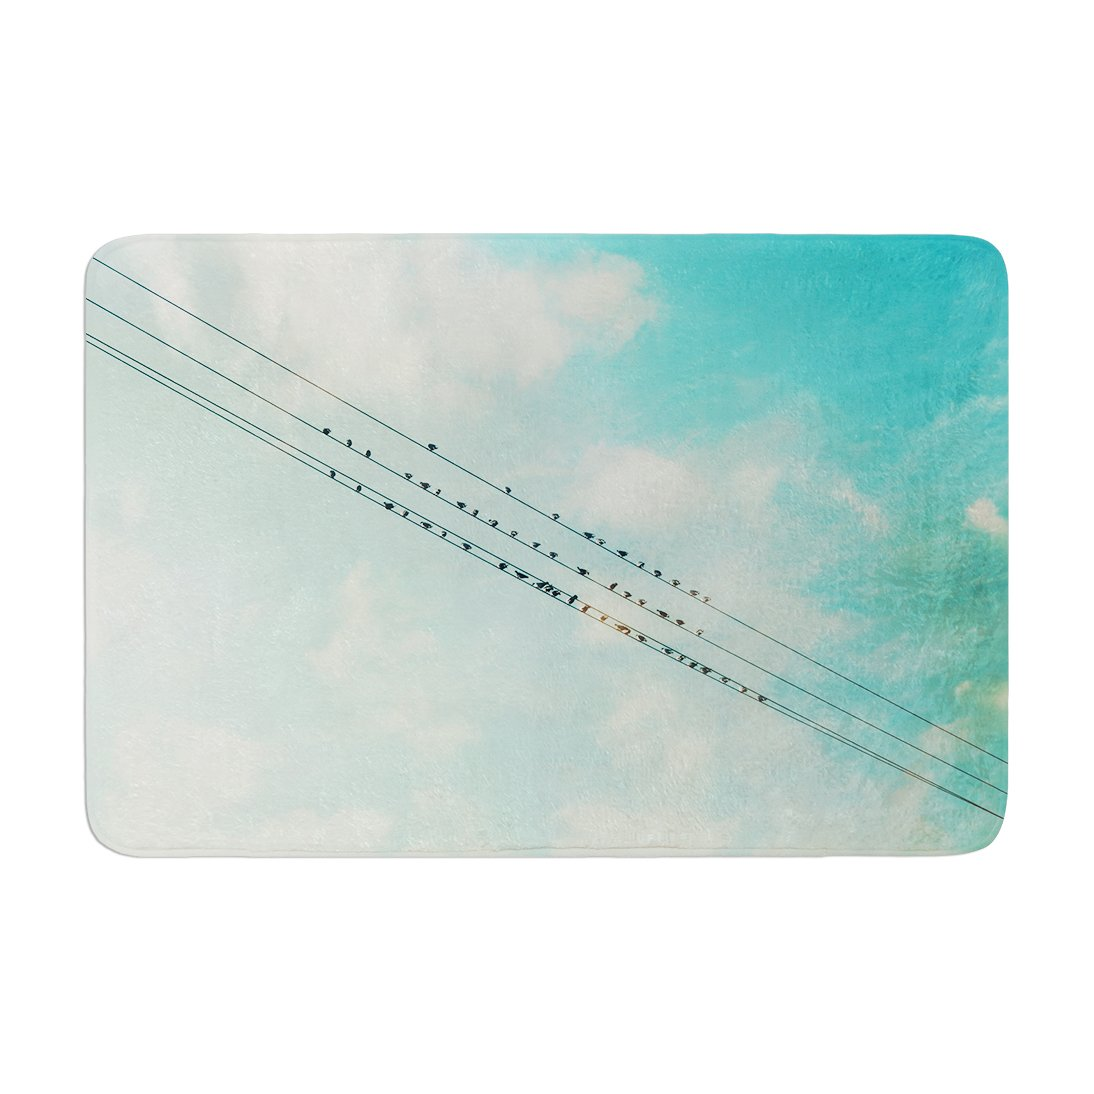 17 by 24 Kess InHouse Sylvia Cook Birds on Wires Teal Sky Memory Foam Bath Mat